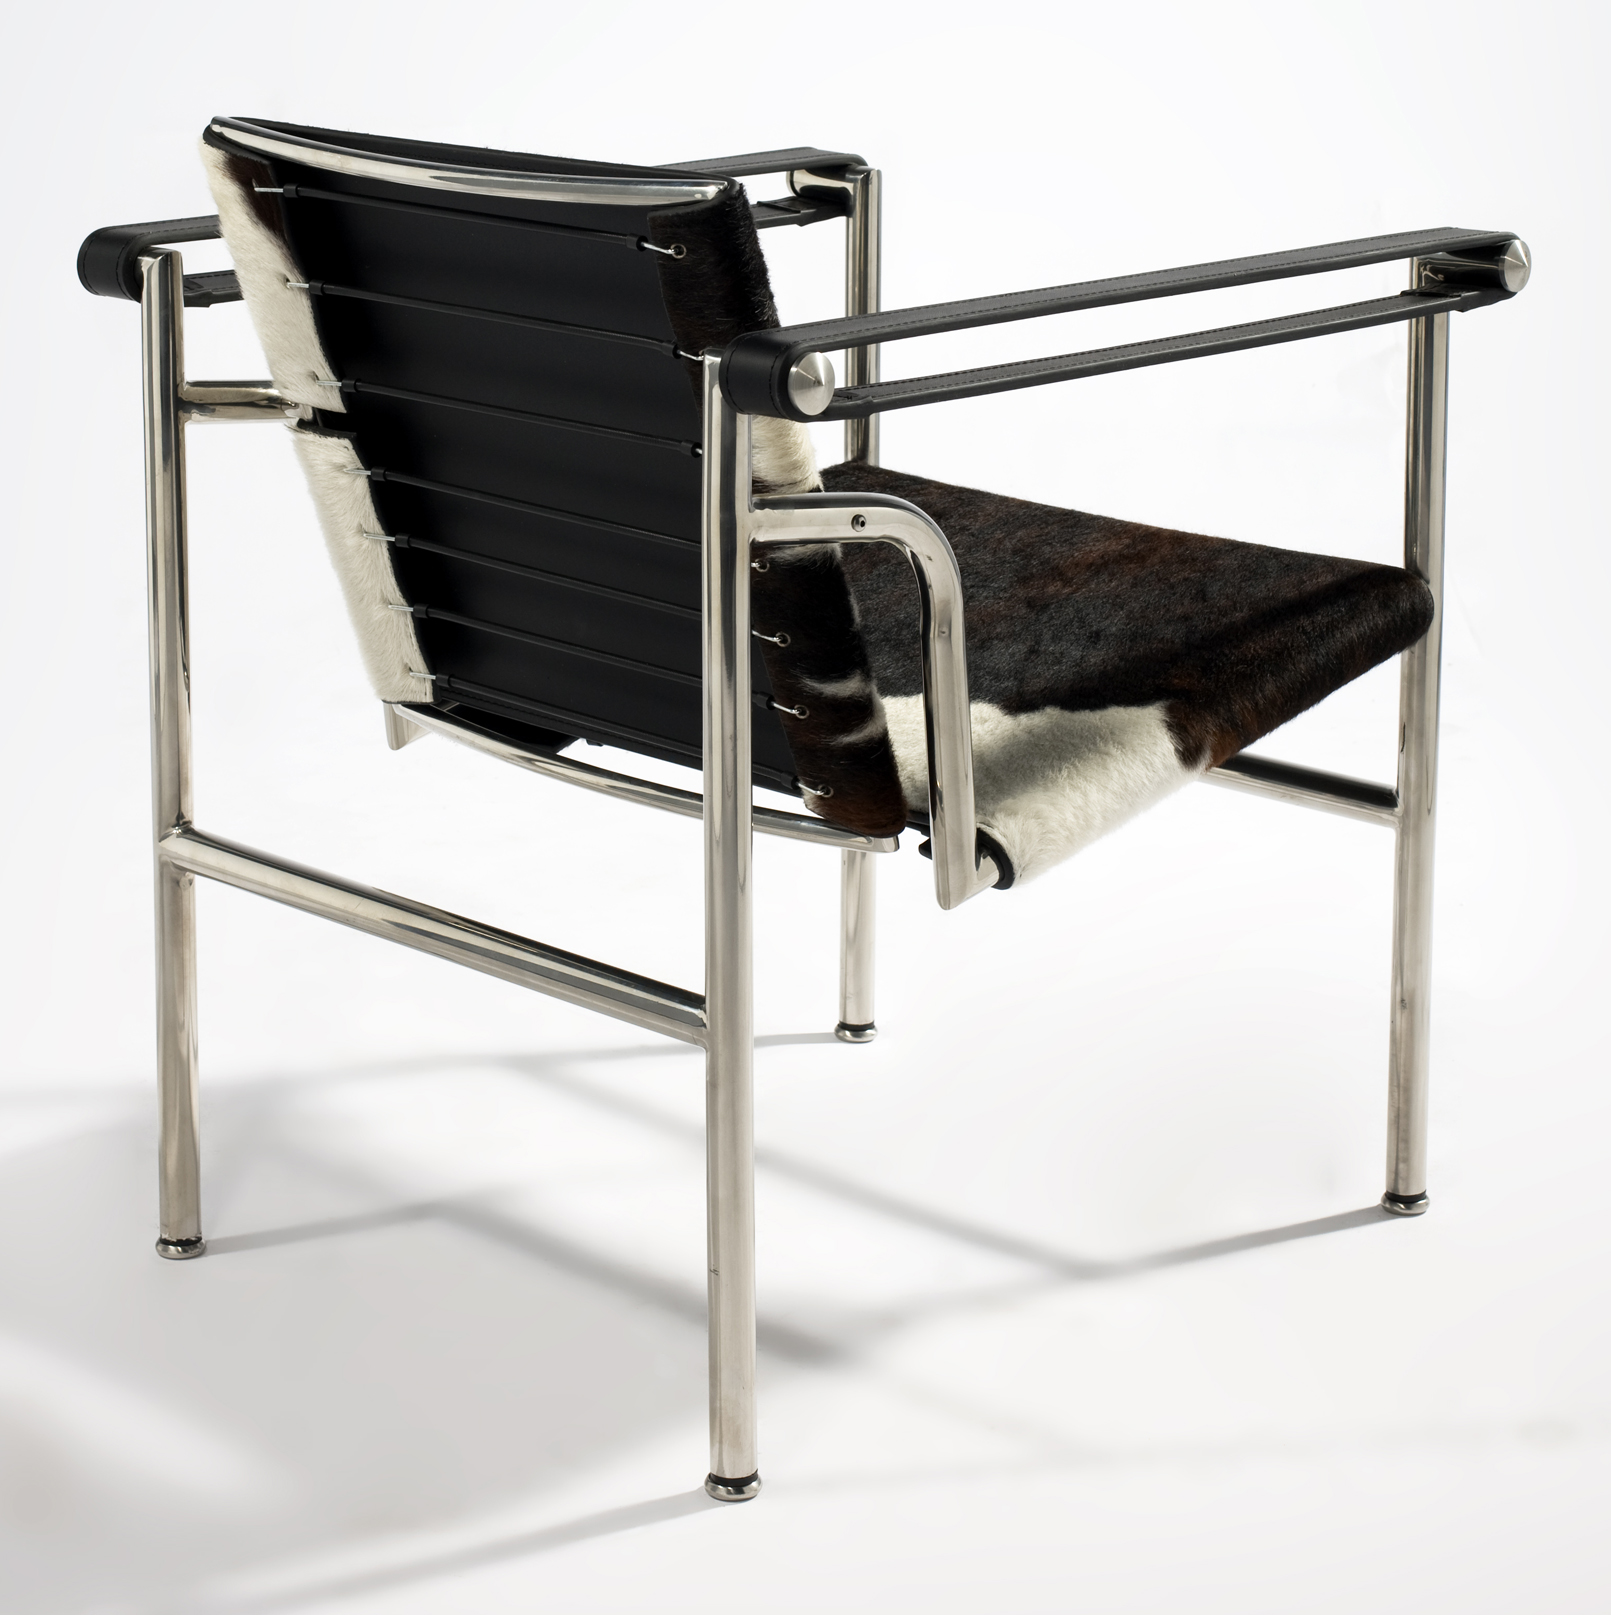 le corbusier chaise longue pony skin with Silla Basculant Lc1 En Piel De Vaca on Id F 5990763 likewise Id F 6332623 moreover Corbusier Chaise Design Fidelity Lounge Le Corbusier Chaise Longue Originale Prezzo likewise Id F 7811013 additionally Id F 1940782.